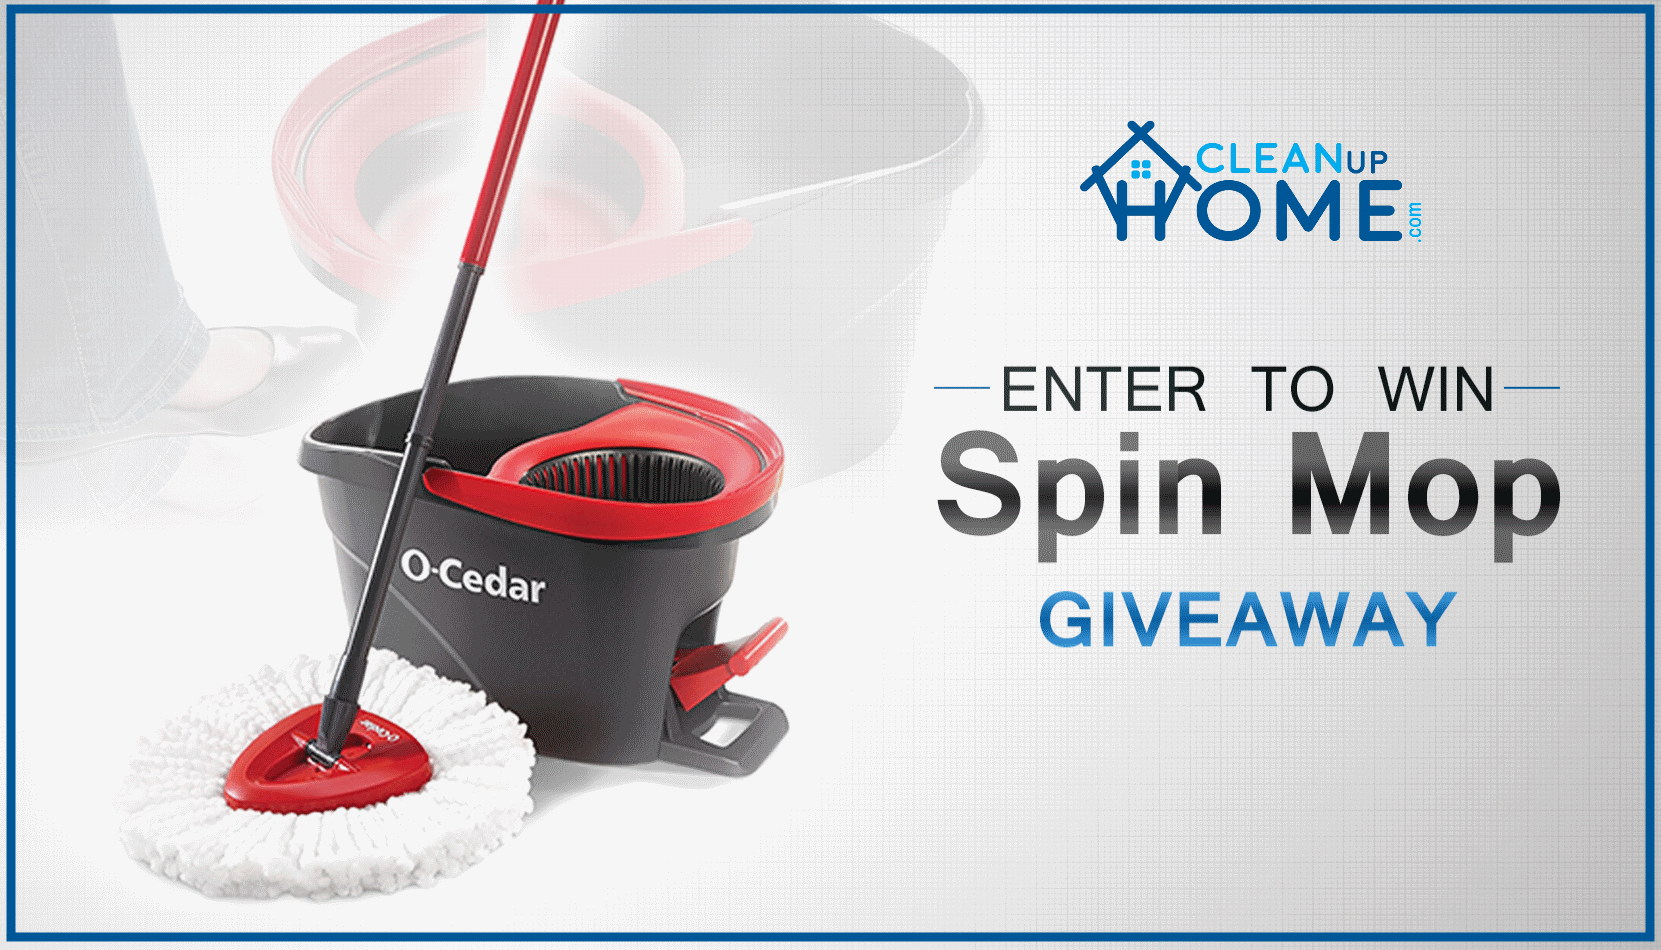 Giveaway of Spin Mop